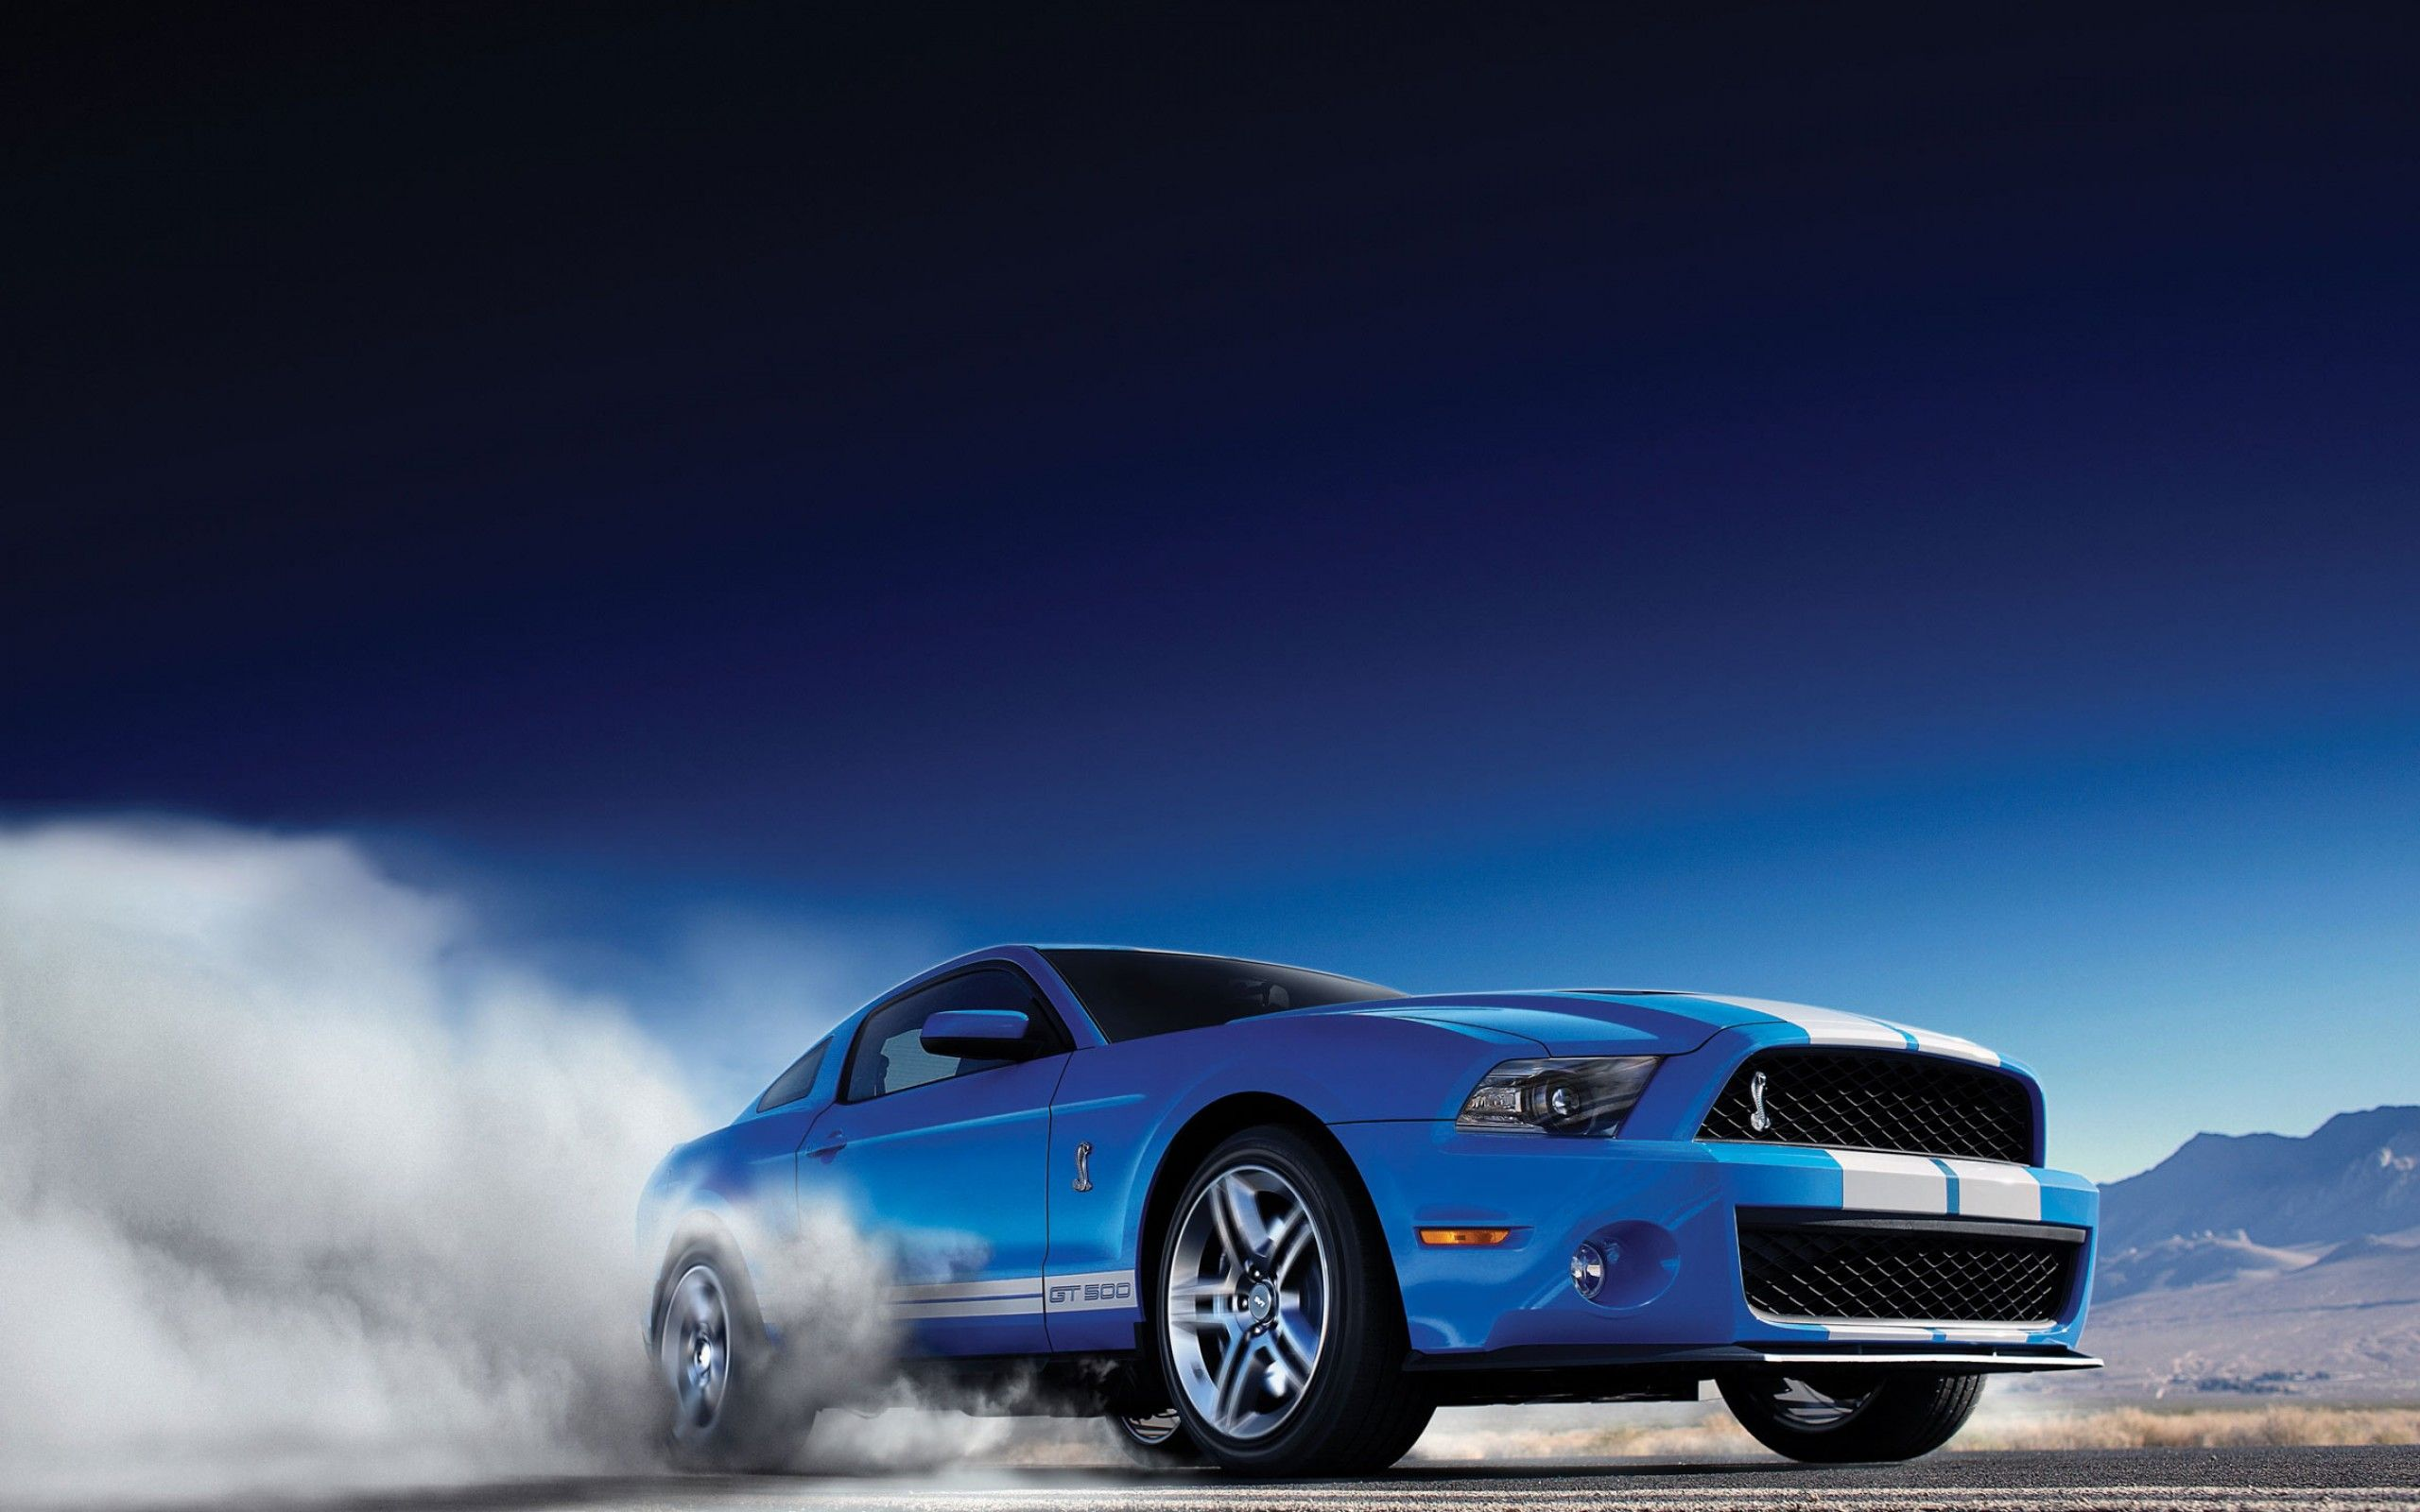 Ford Shelby Gt500 HD Wallpaper. The best